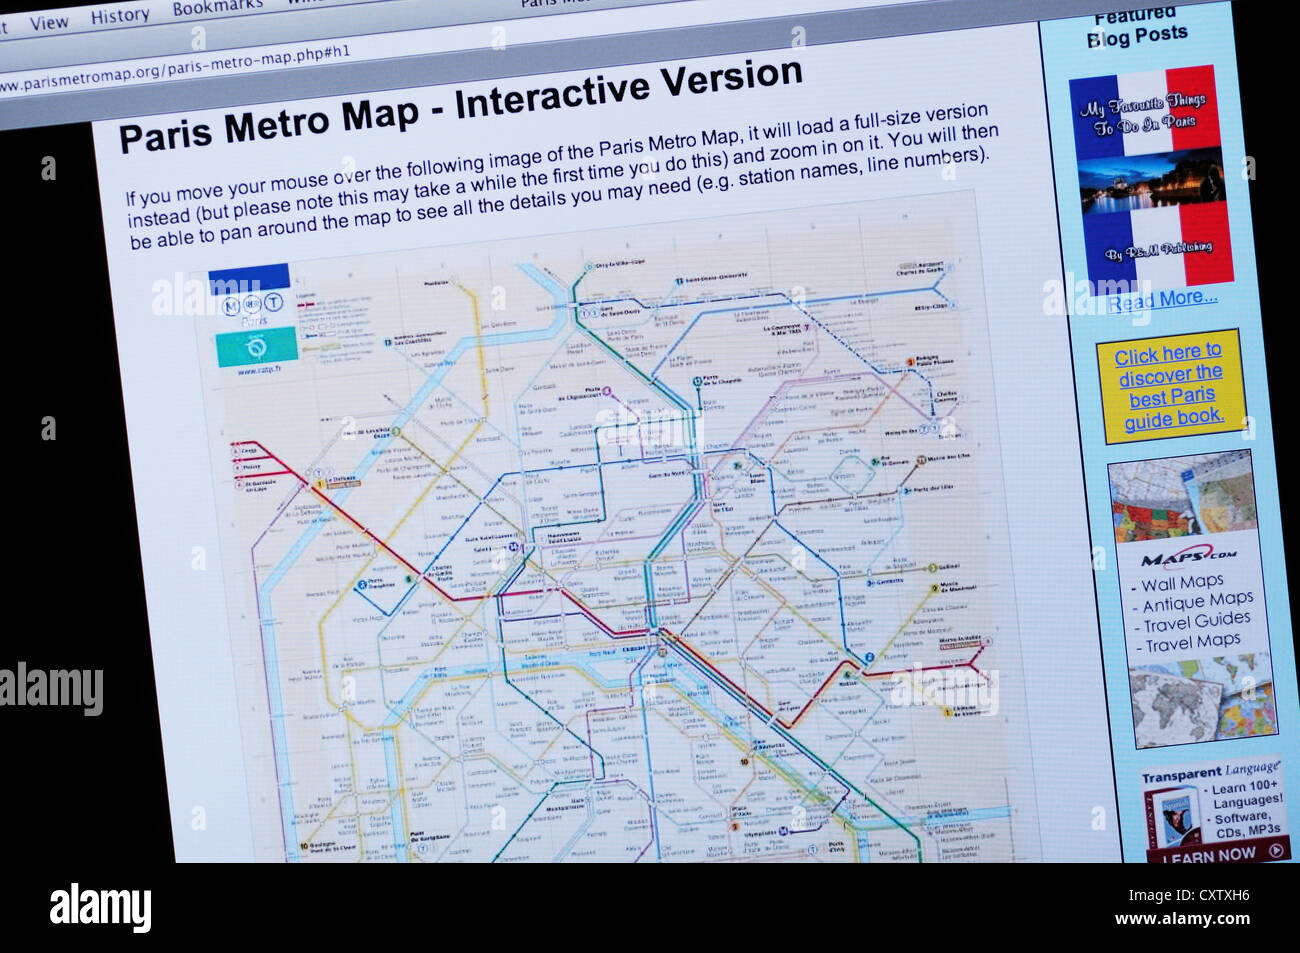 Paris Metro Map Website Stock Photo Alamy - What to see in paris map